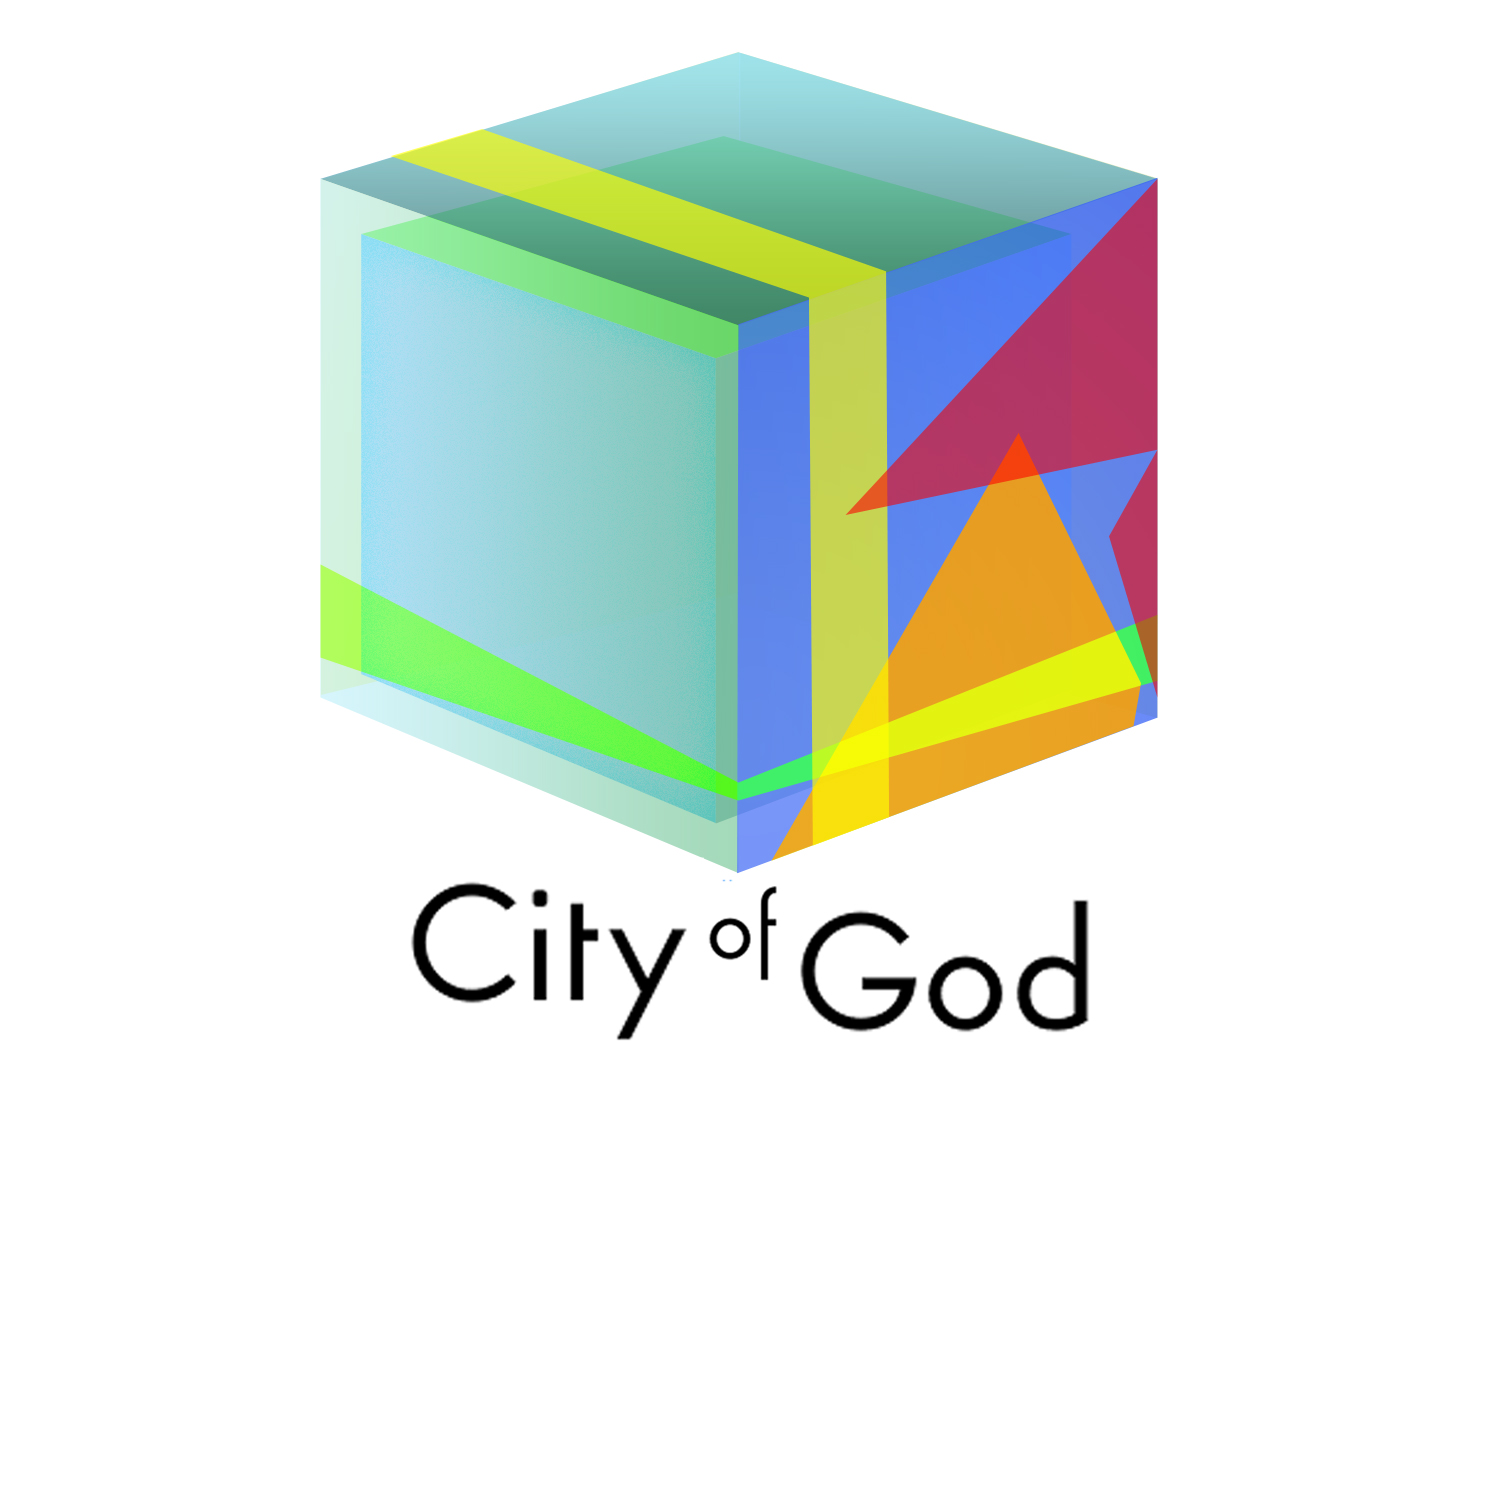 City of God Logo